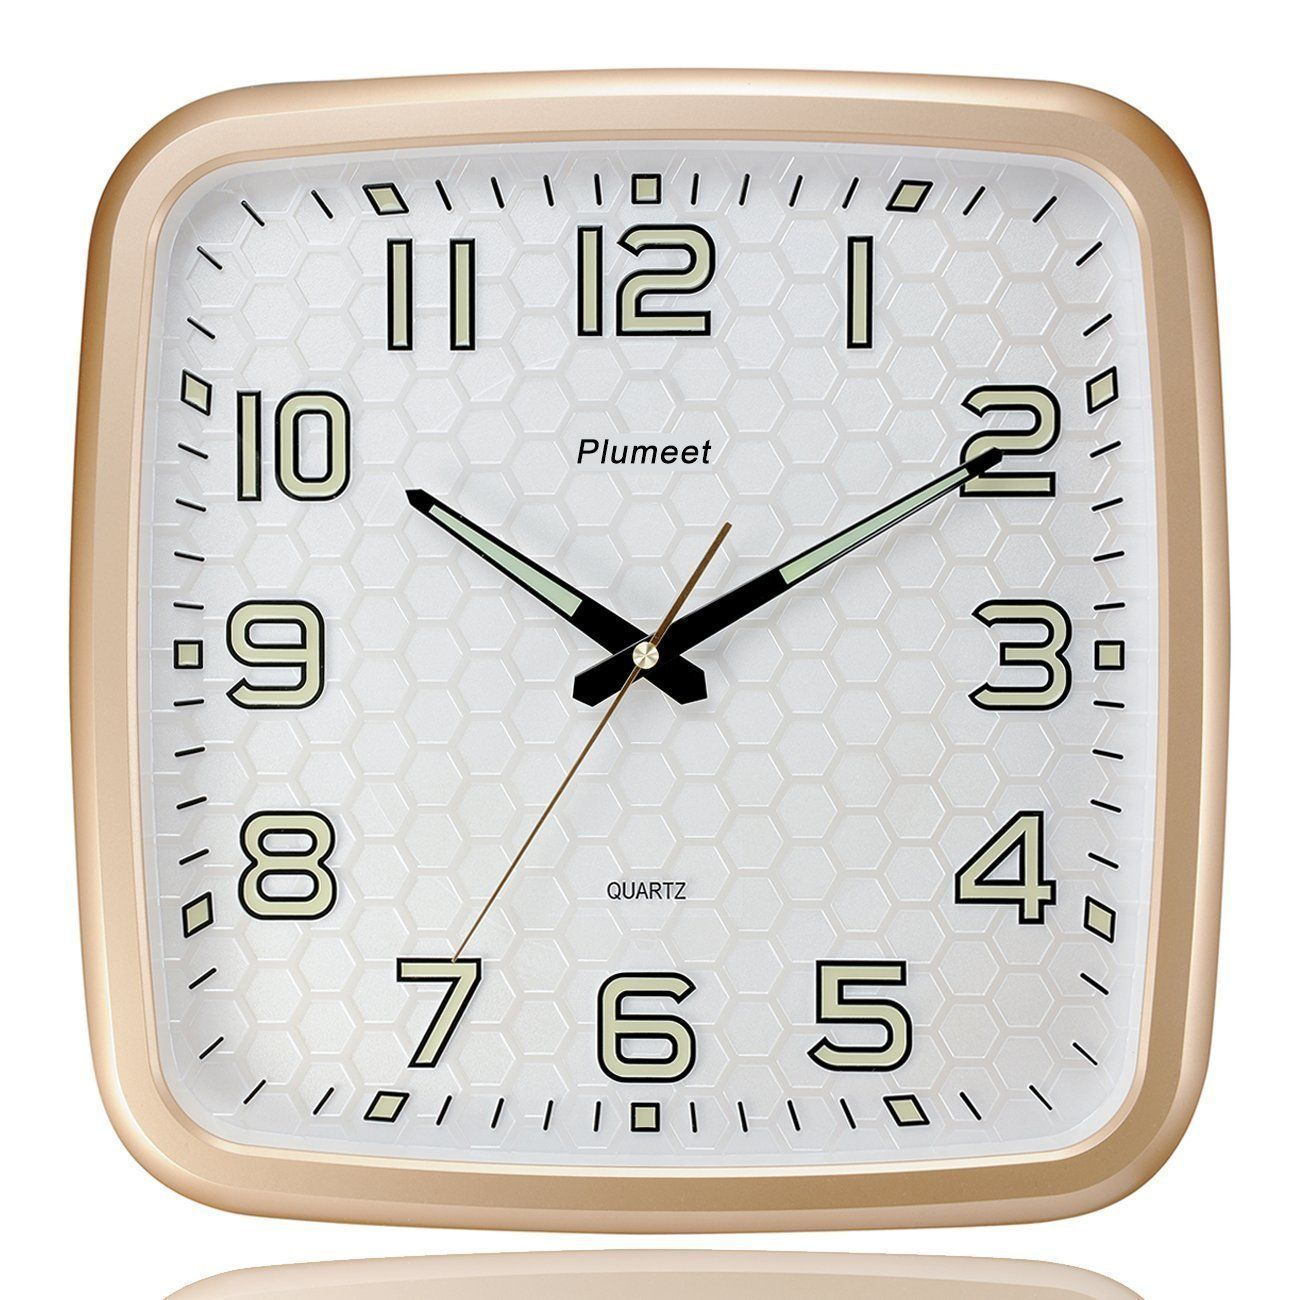 Bekith classic clock quiet sweep wooden pattern 13 inch wall clock bekith classic clock quiet sweep wooden pattern 13 inch wall clock once in a lifetime offer home decor clocks home decor clocks pinterest amipublicfo Choice Image